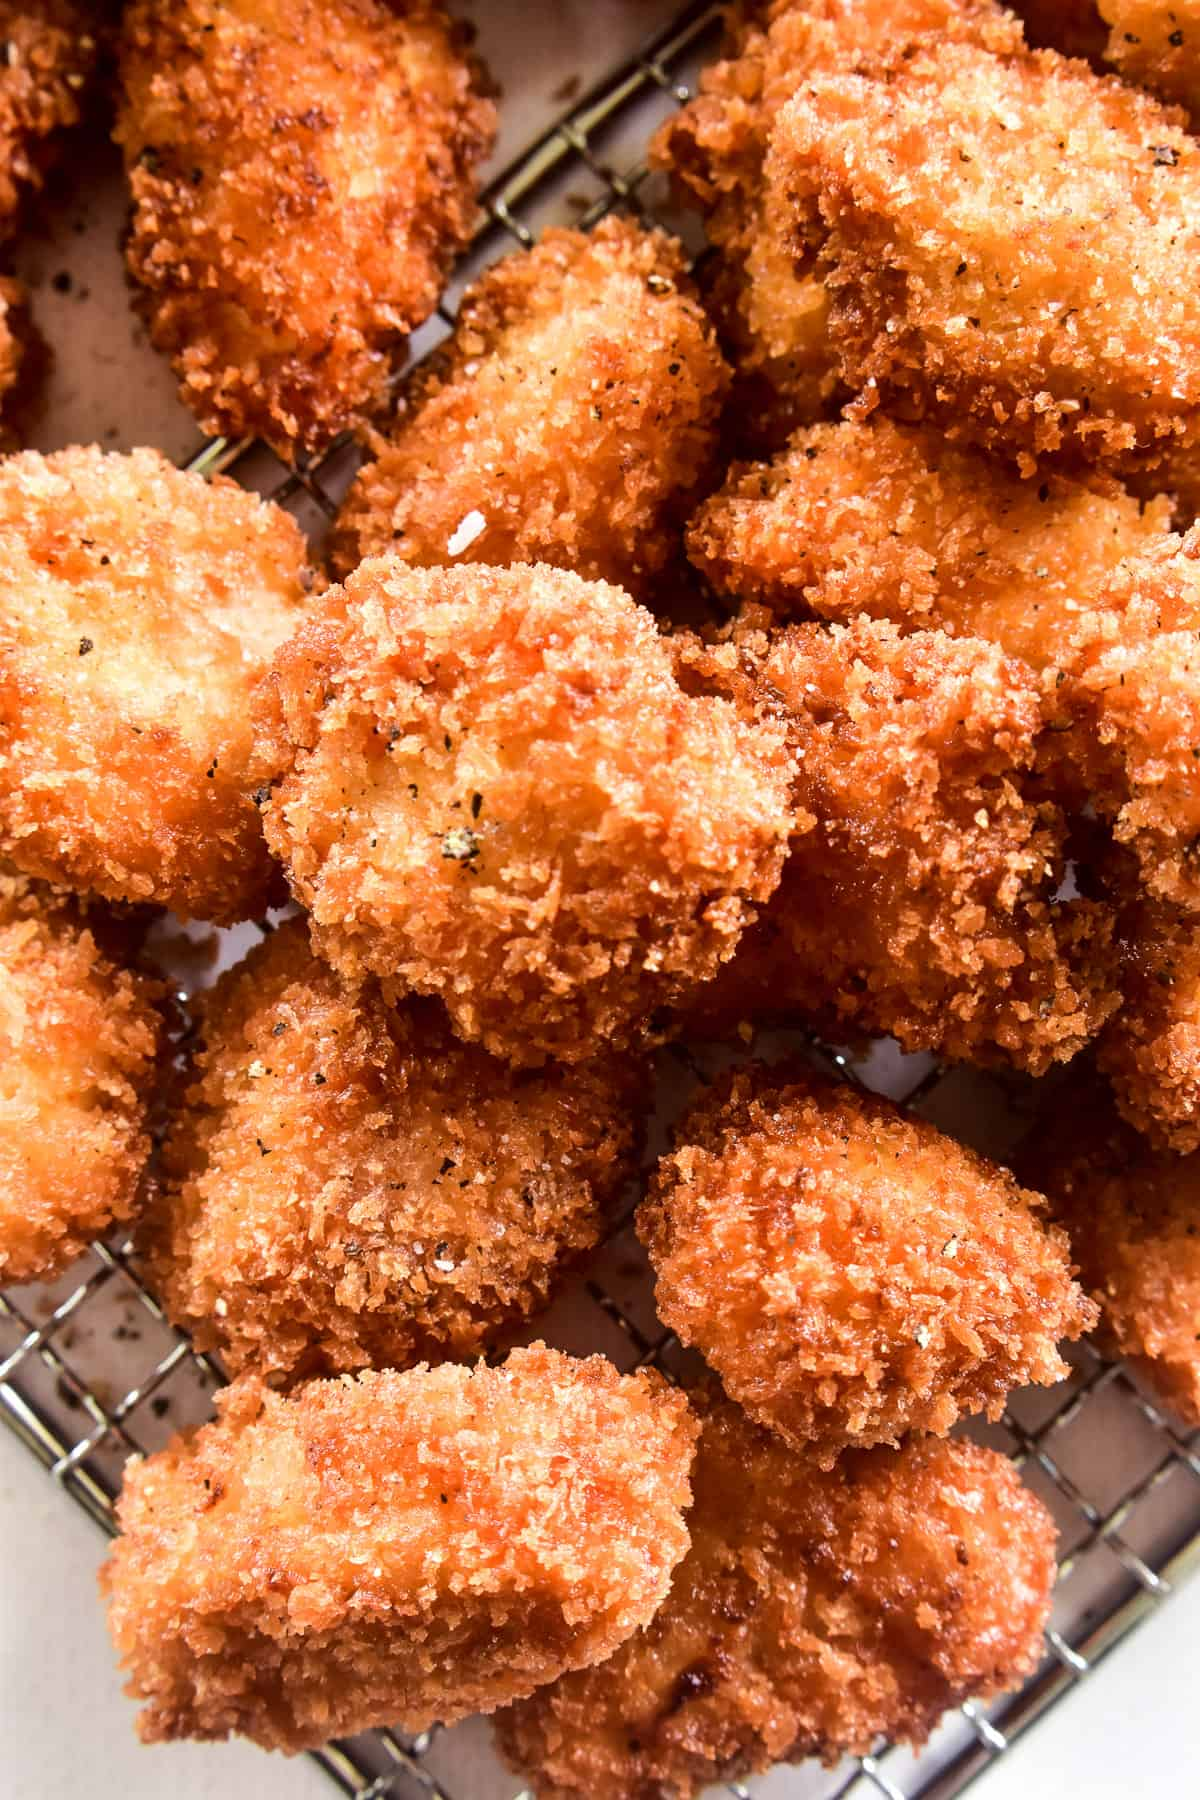 Close up of Crispy Chicken Nuggets on a wire rack